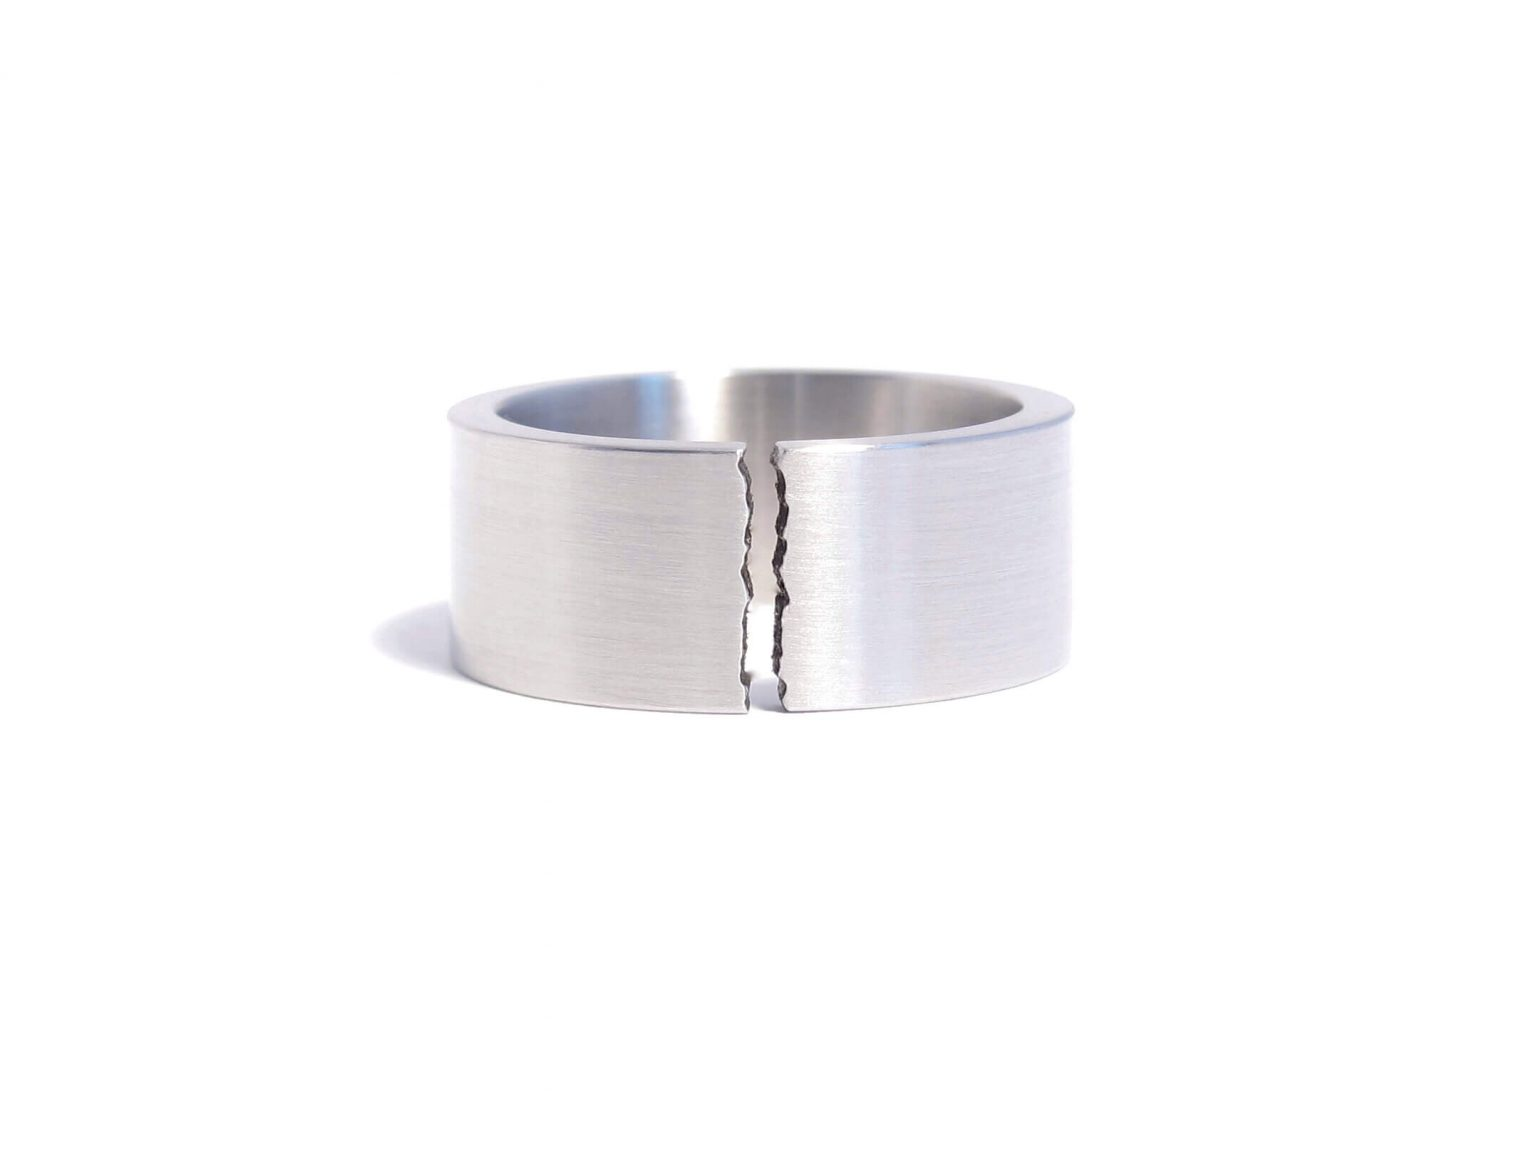 steel ring with a break line